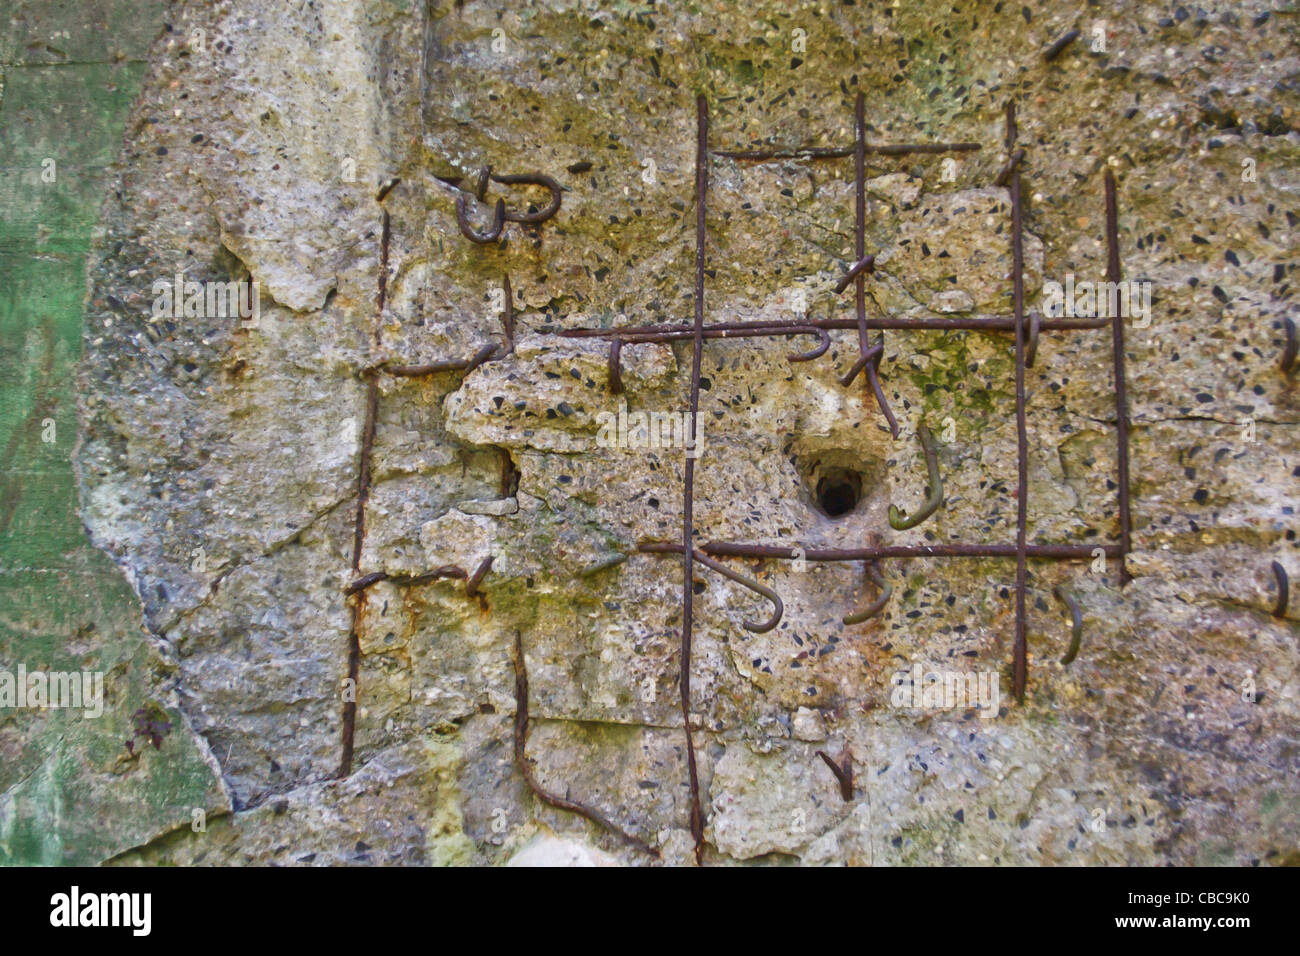 The Miedzyrzecz Fortification Region. Close-up of a bullet hole in reinforced concrete wall of bunker. - Stock Image